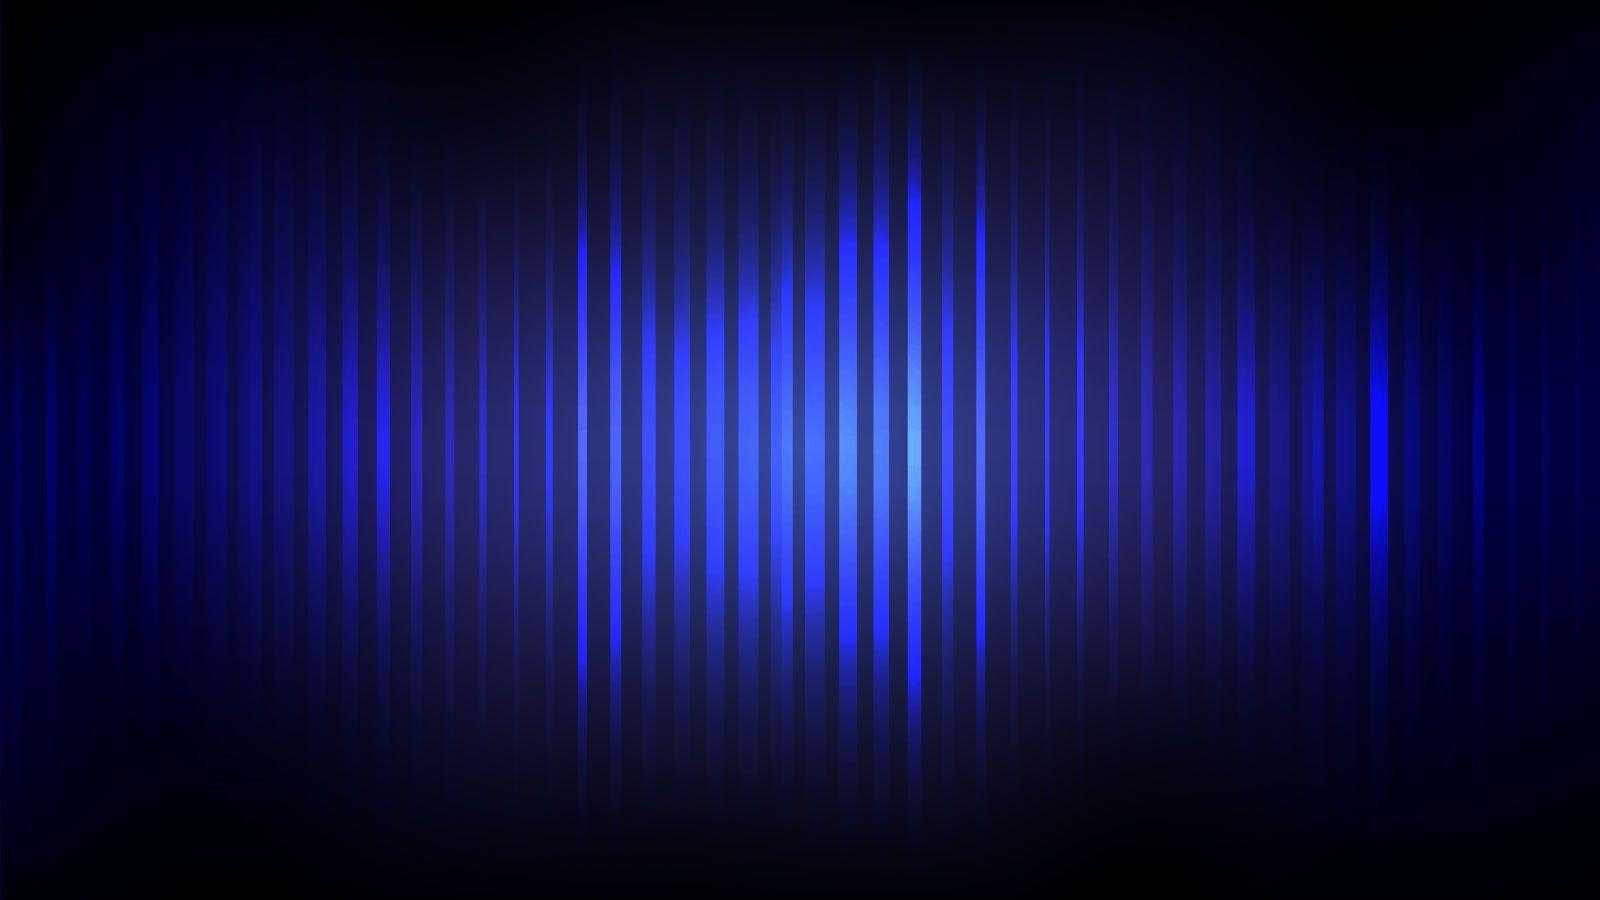 sound wave wallpapers wallpaper cave